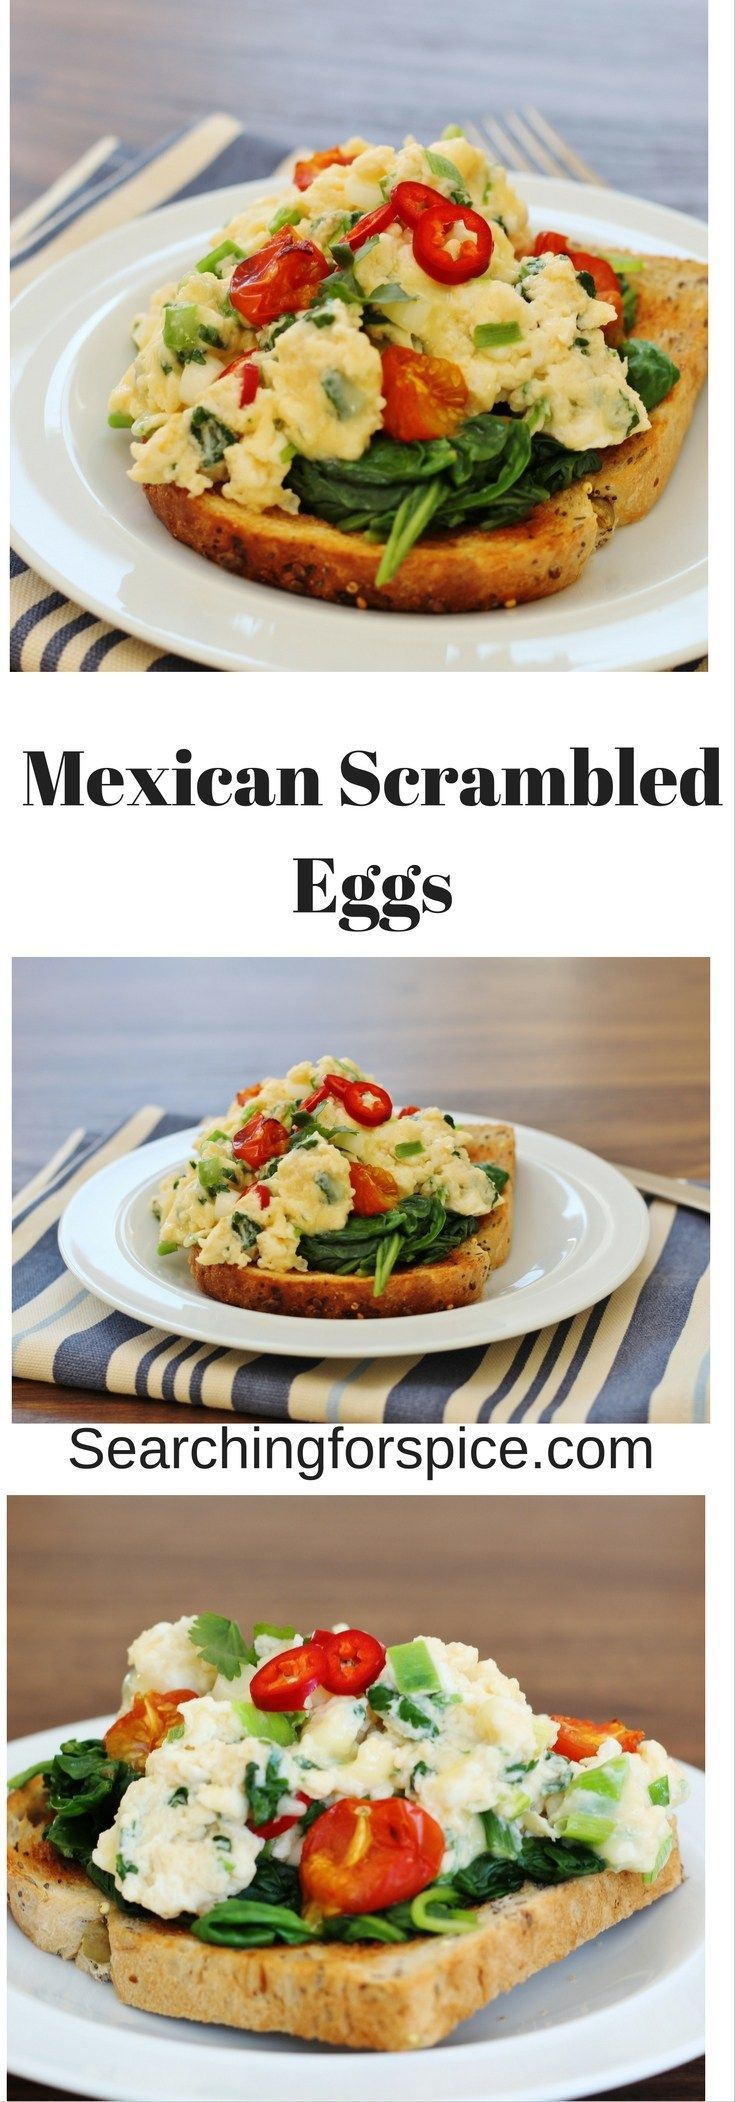 Mexican Scrambled Eggs.  A healthy breakfast of scrambled eggs, tomatoes and chilli peppers on a bed of spinach on toast